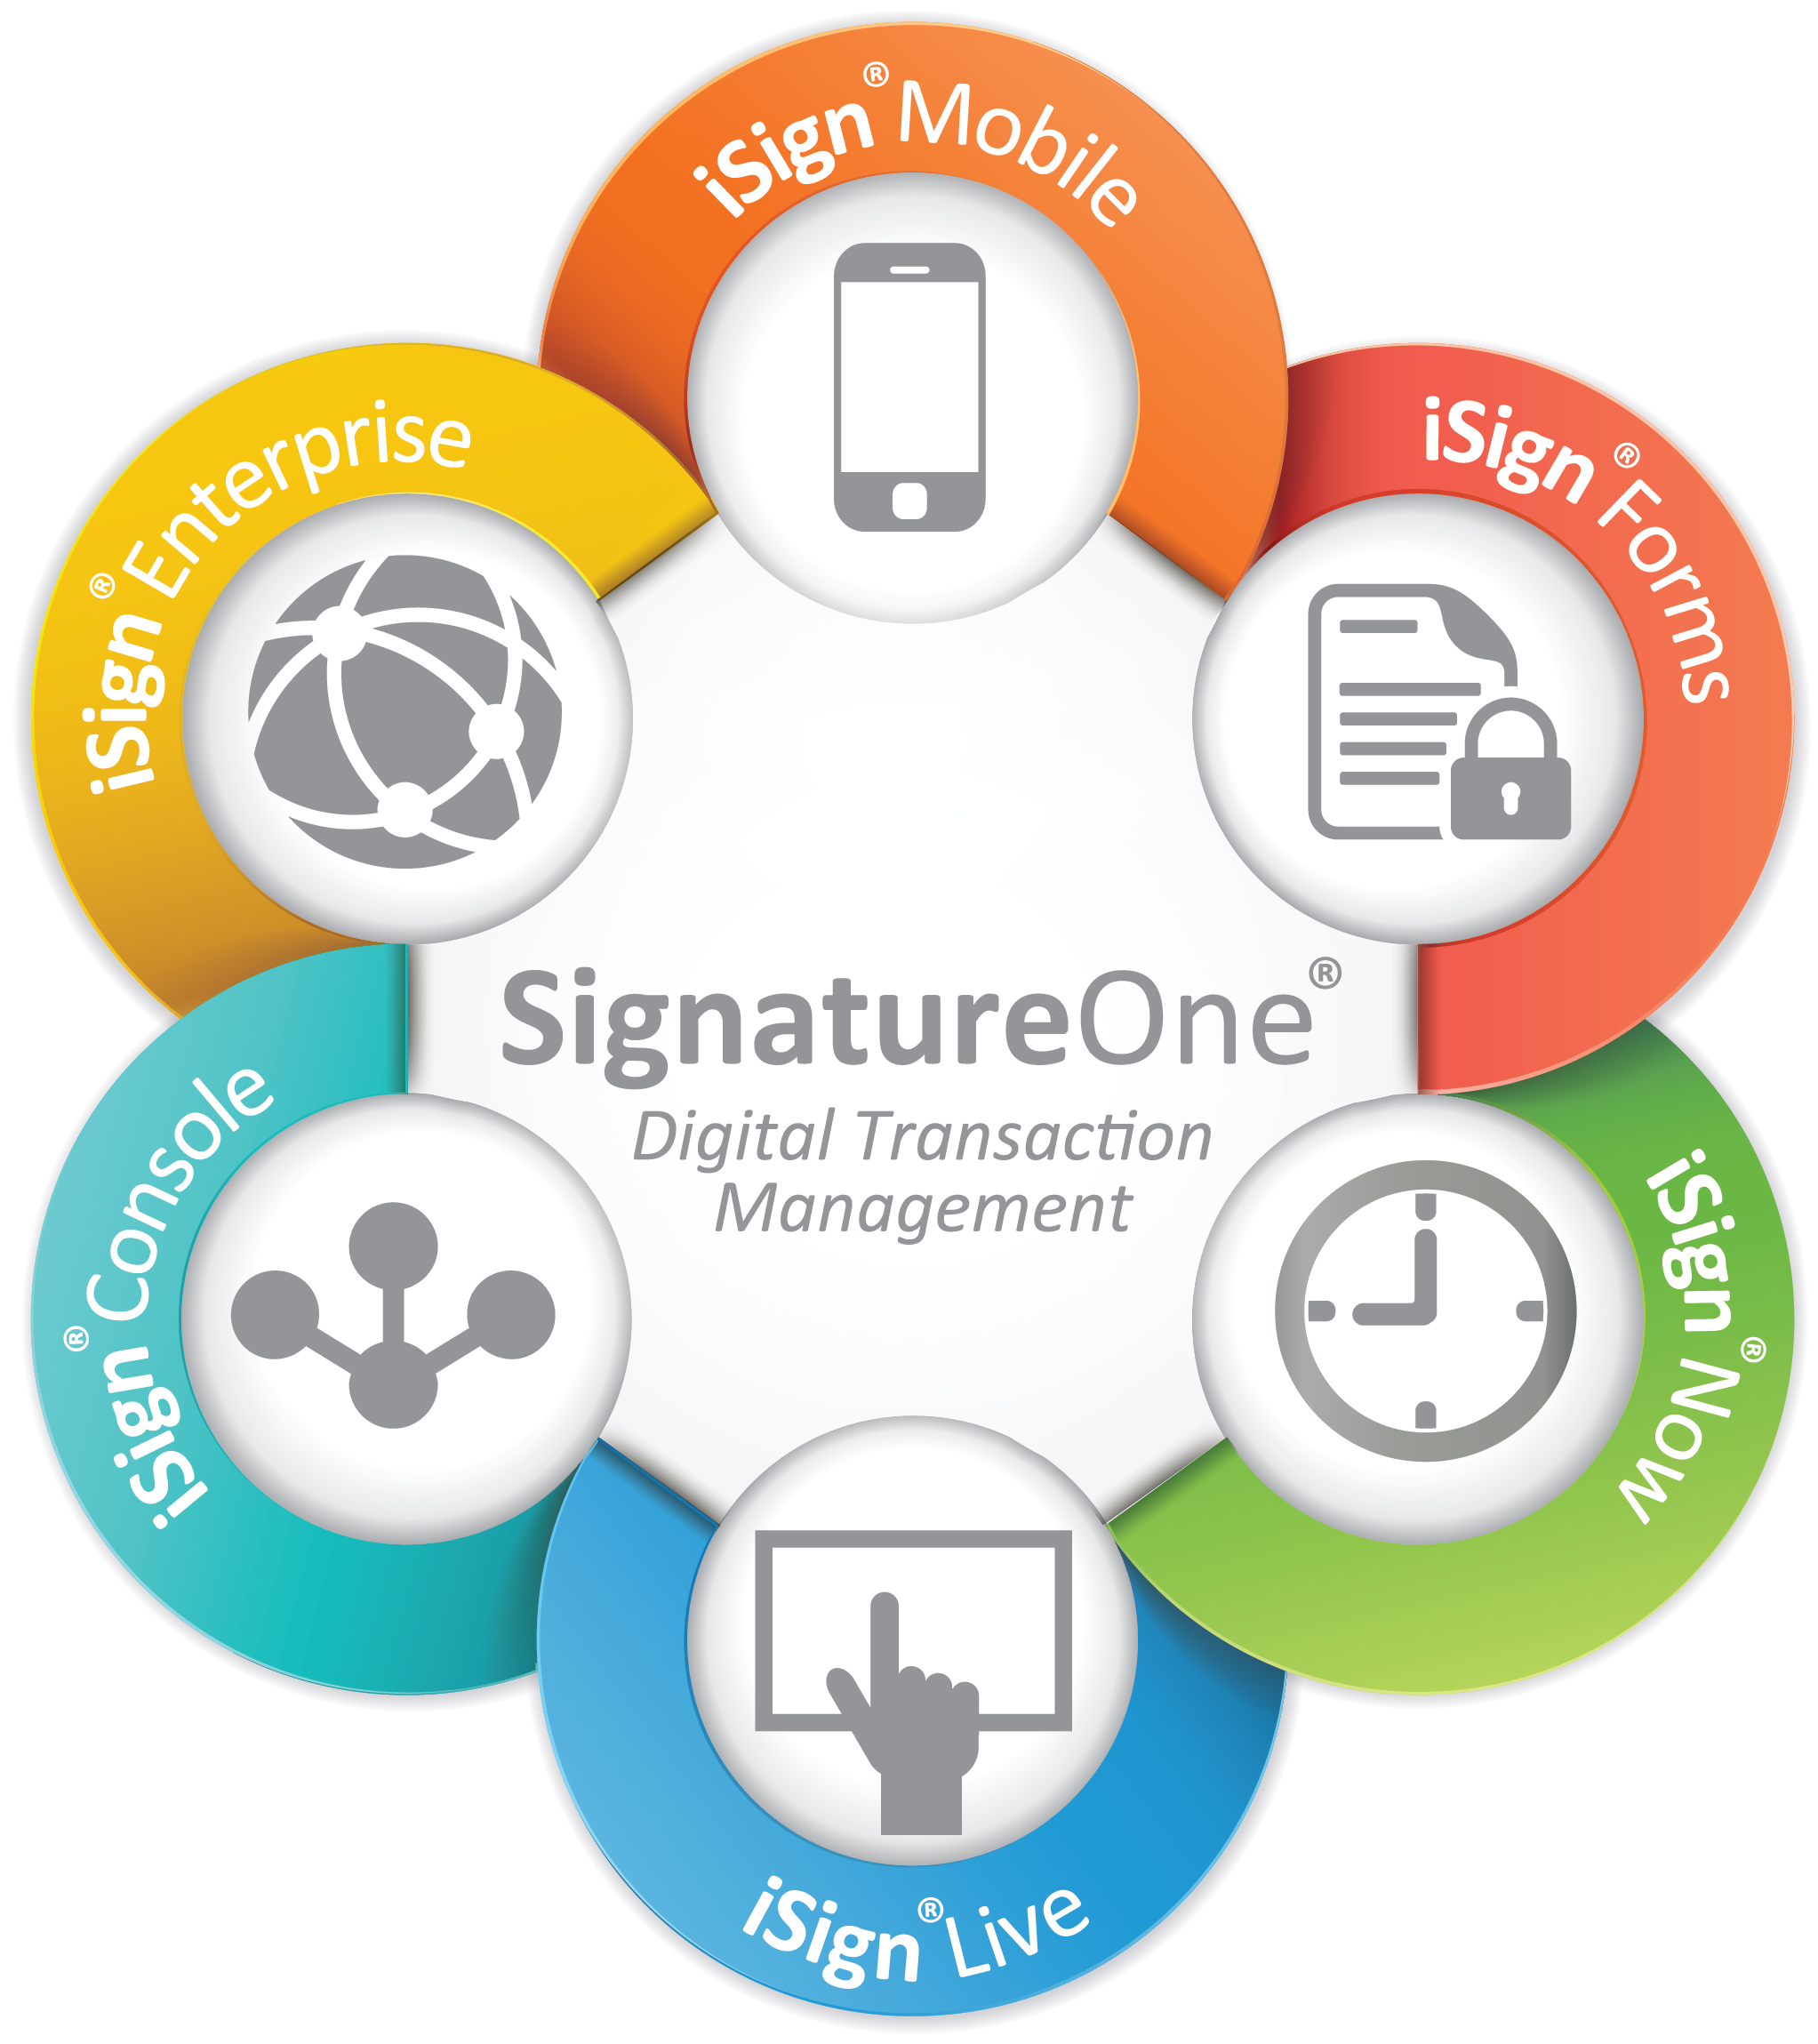 iSign Demo - CIC SignatureOne® Ceremony™ Server Product Features